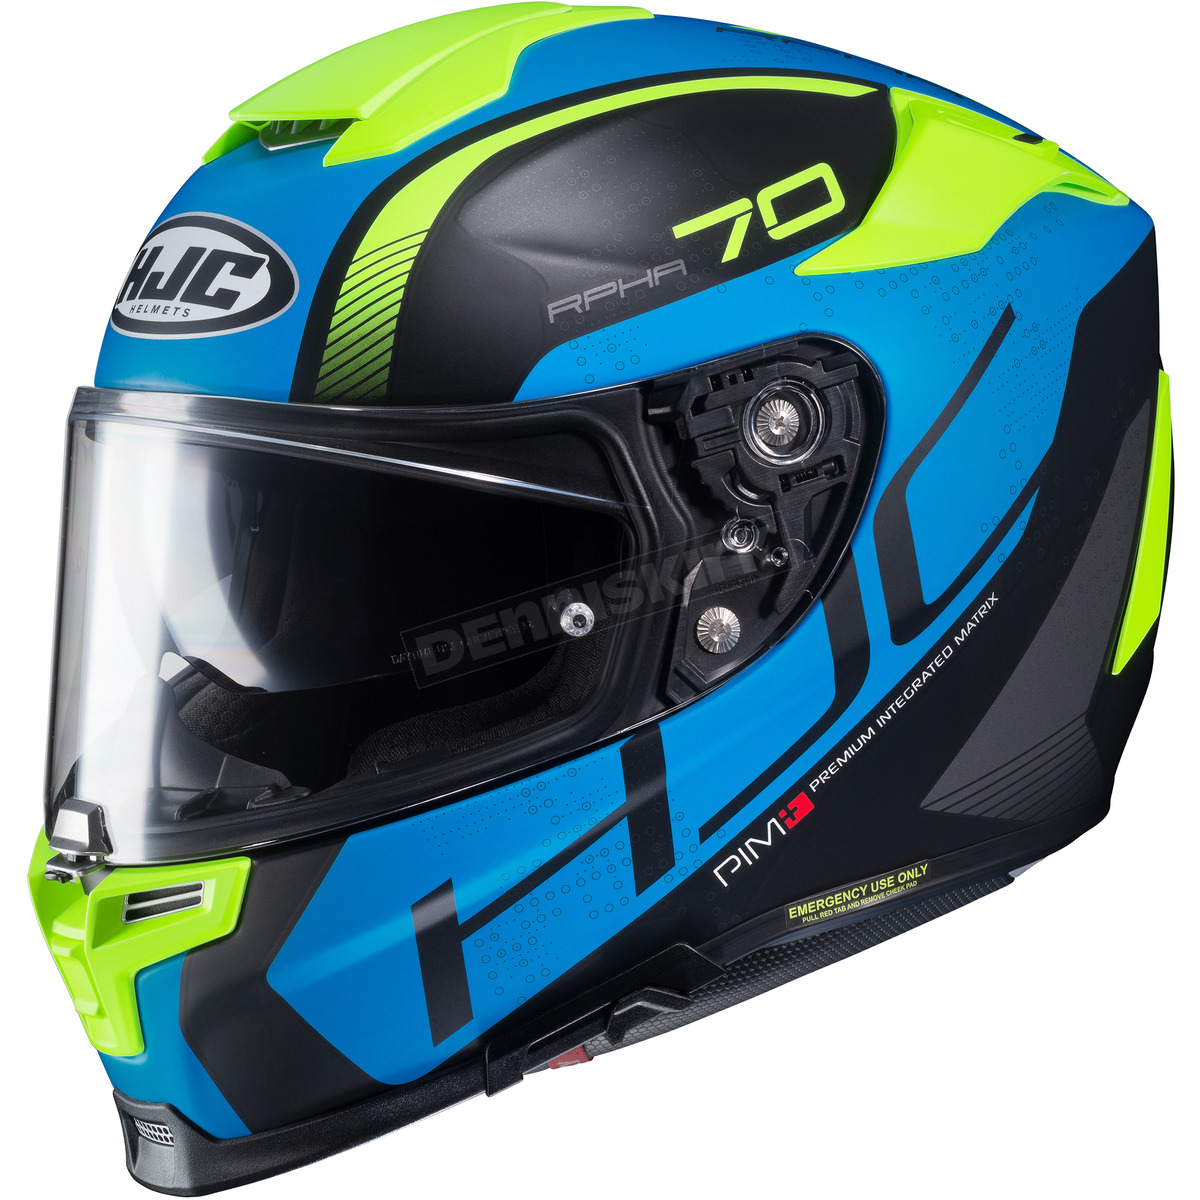 3f594b5b HJC Semi-Flat Blue/Black/Green RPHA-70 ST Vias MC-2SF Helmet - 0804 ...